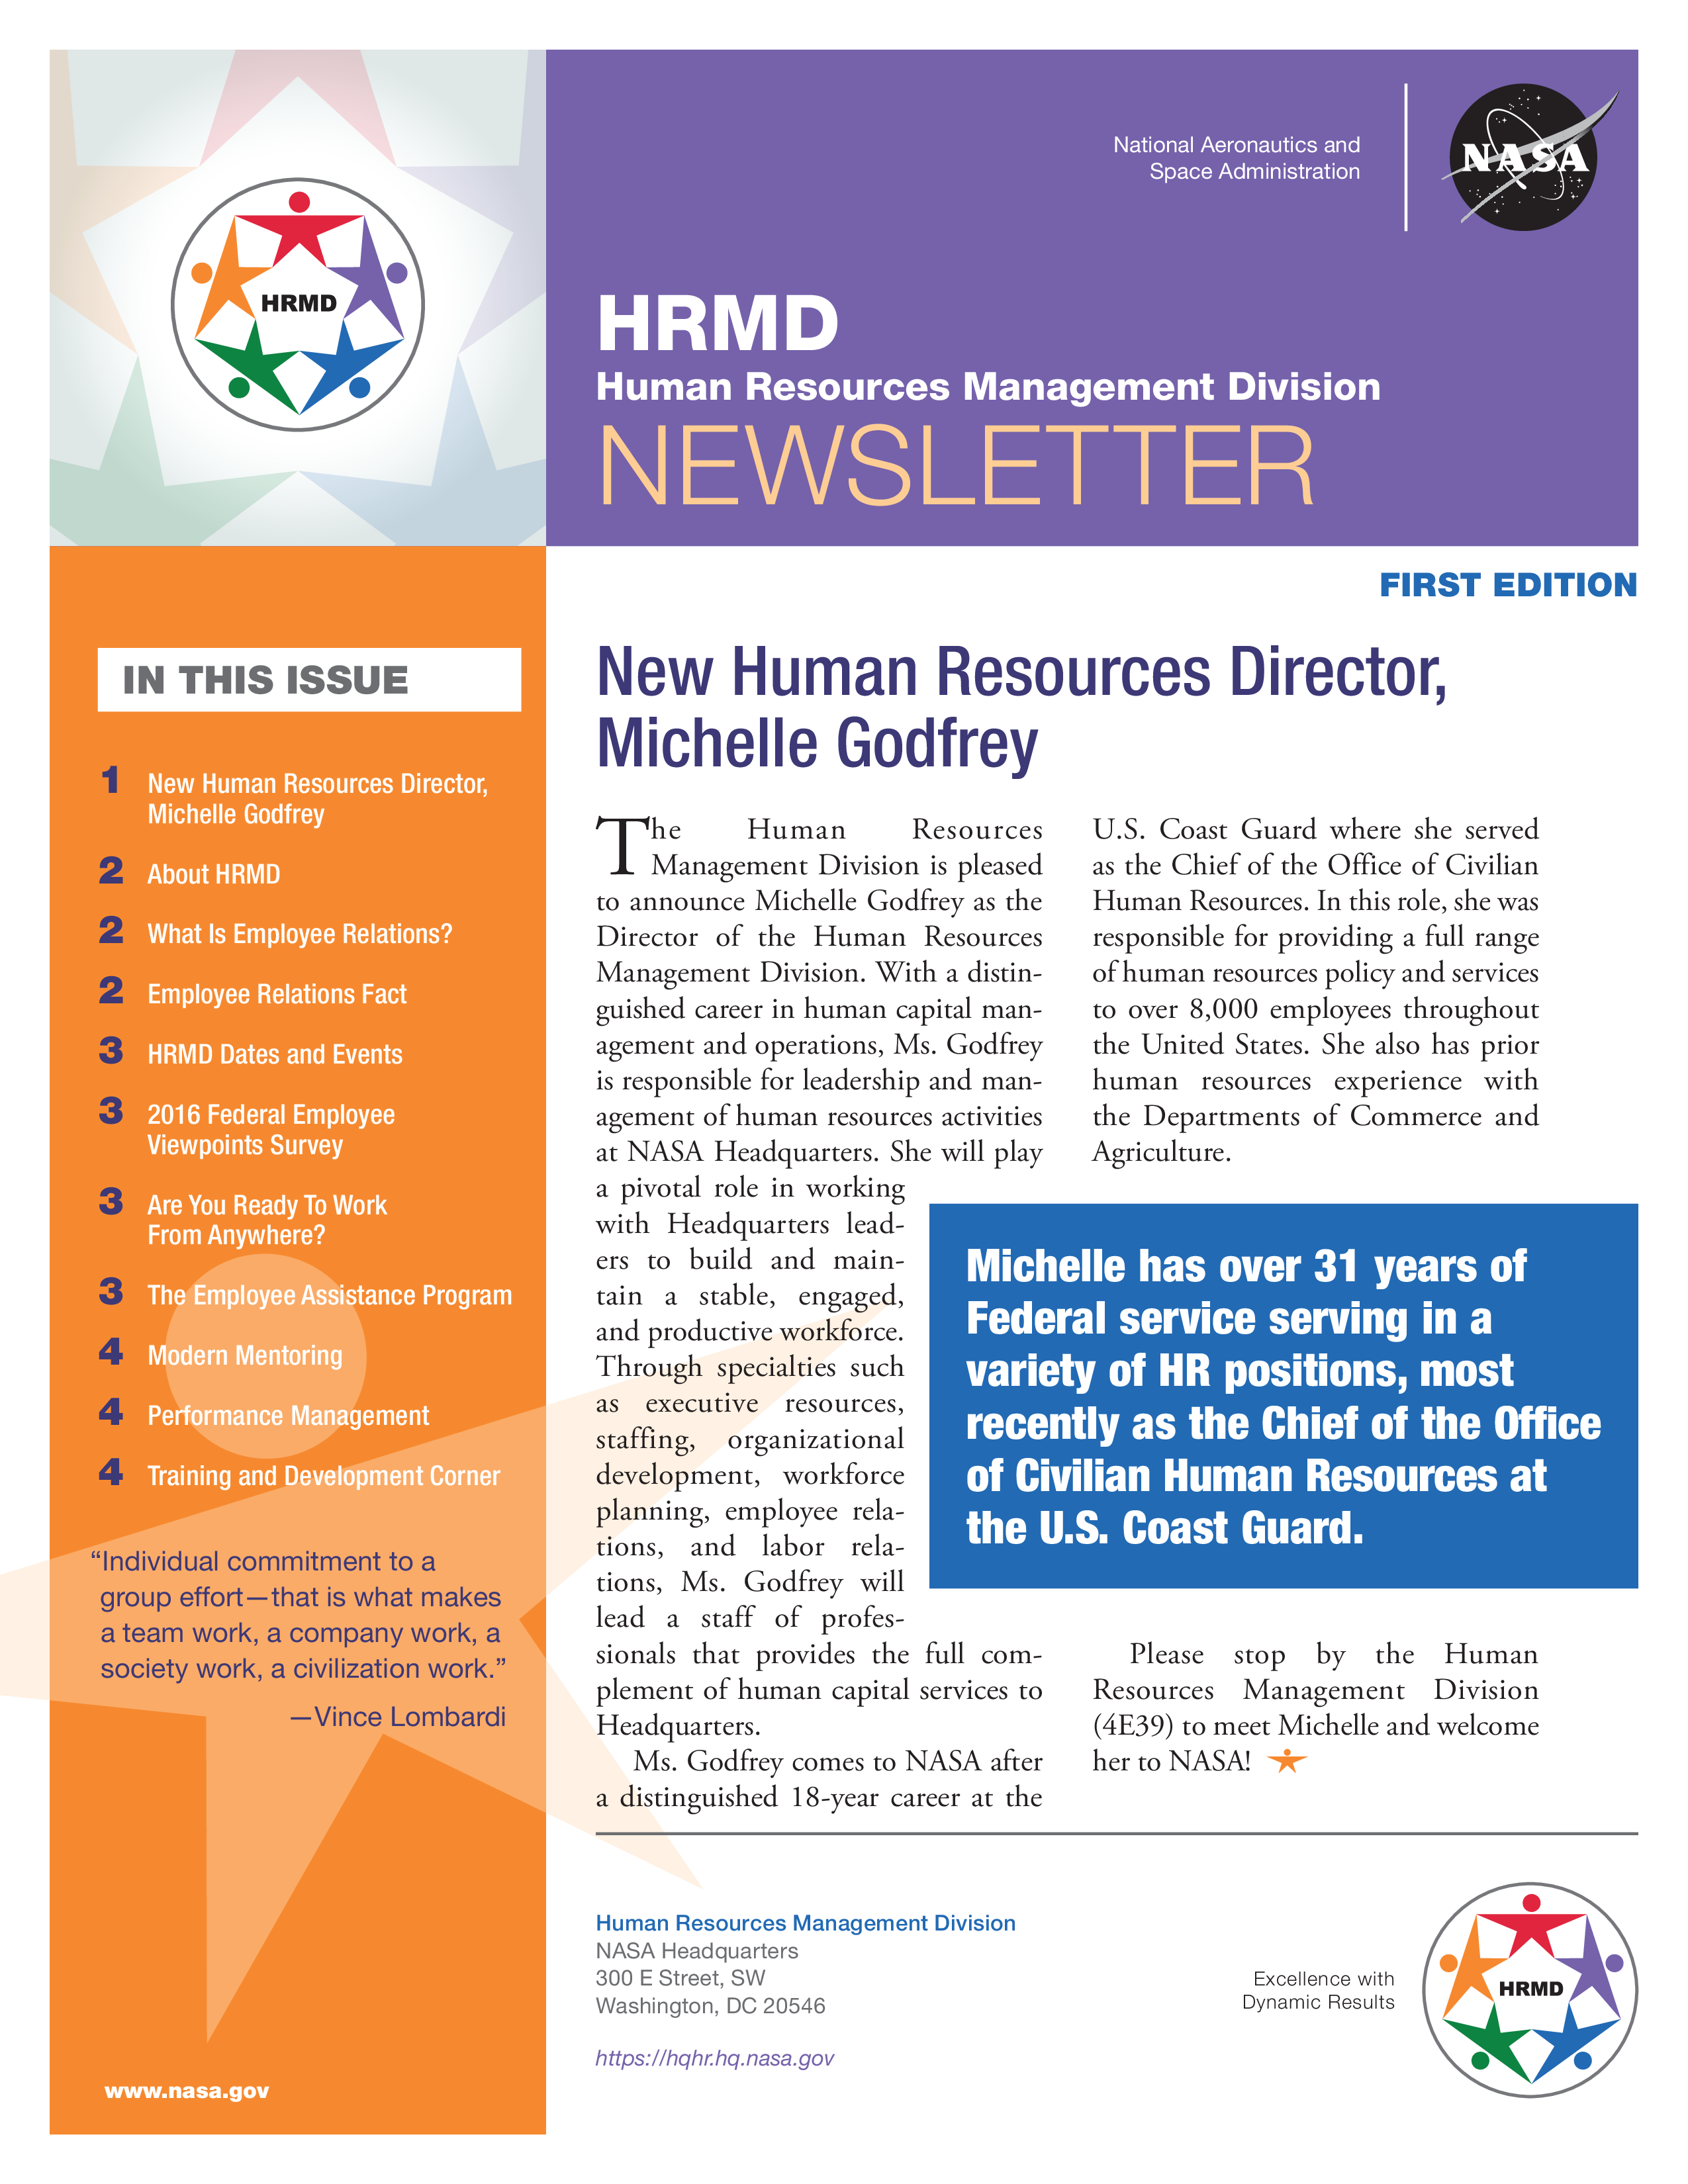 Free Monthly Human Resources Newsletter example | Templates at ...